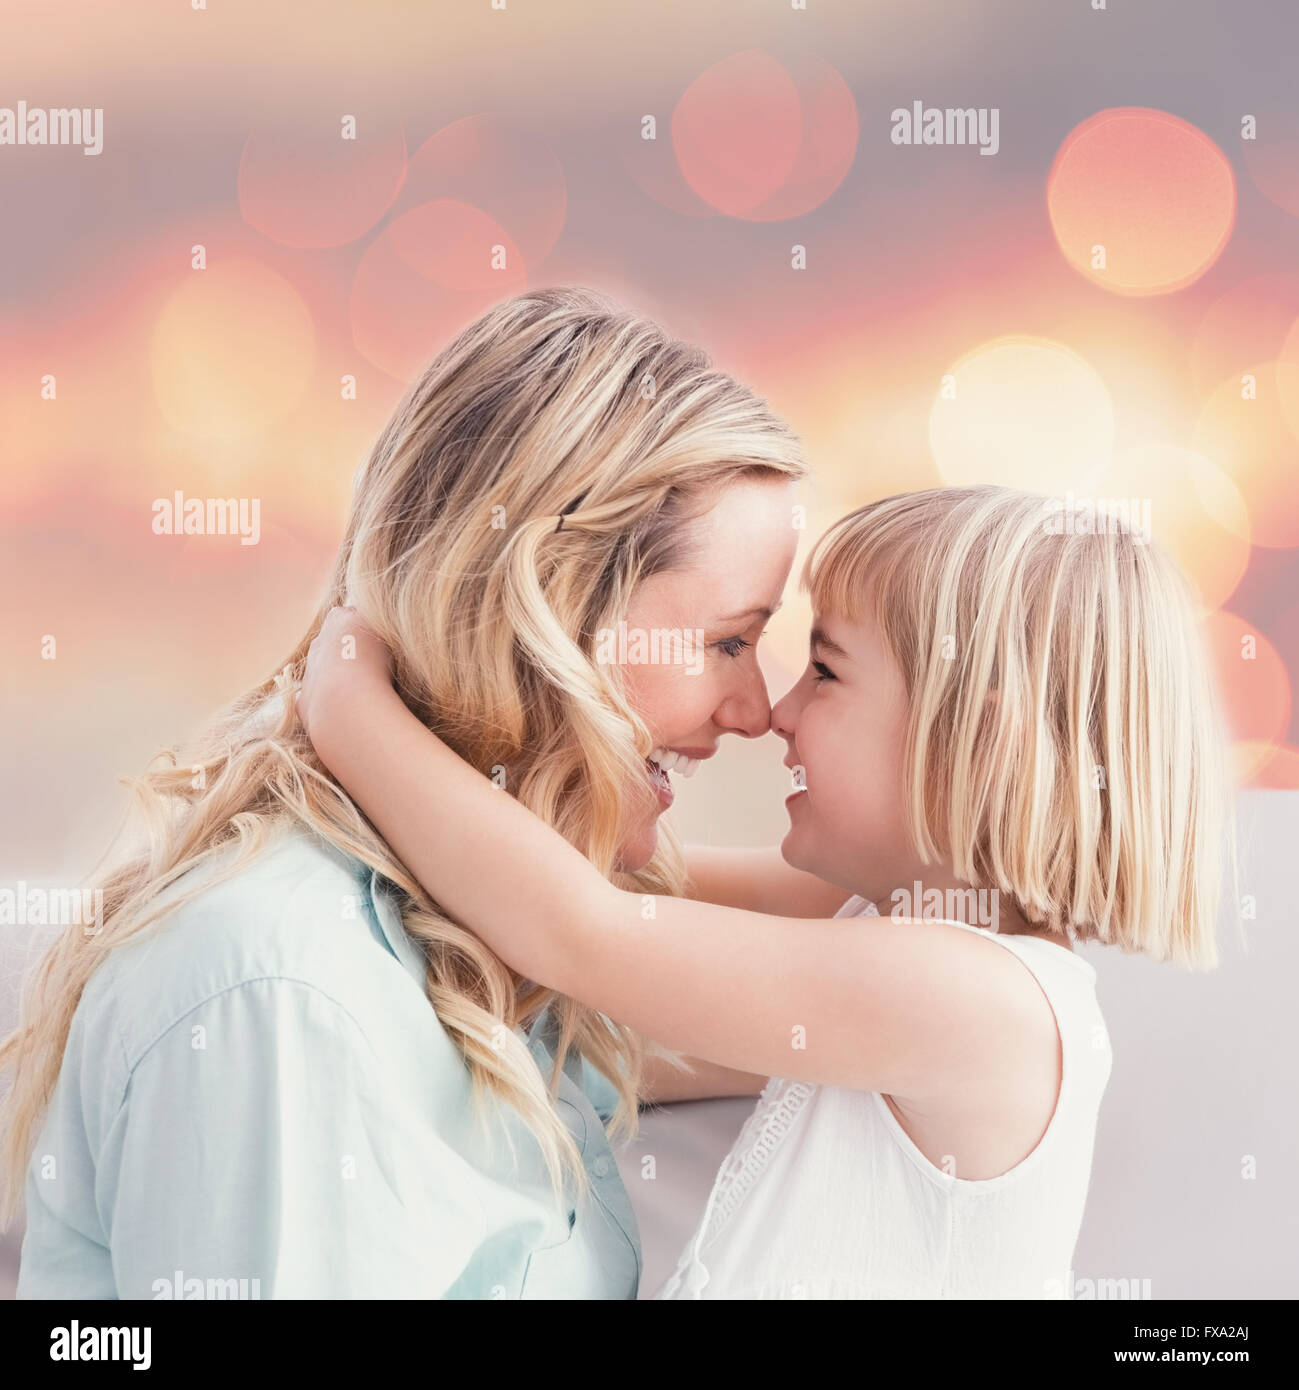 Composite image of mother and daughter rubbing noses on sofa - Stock Image